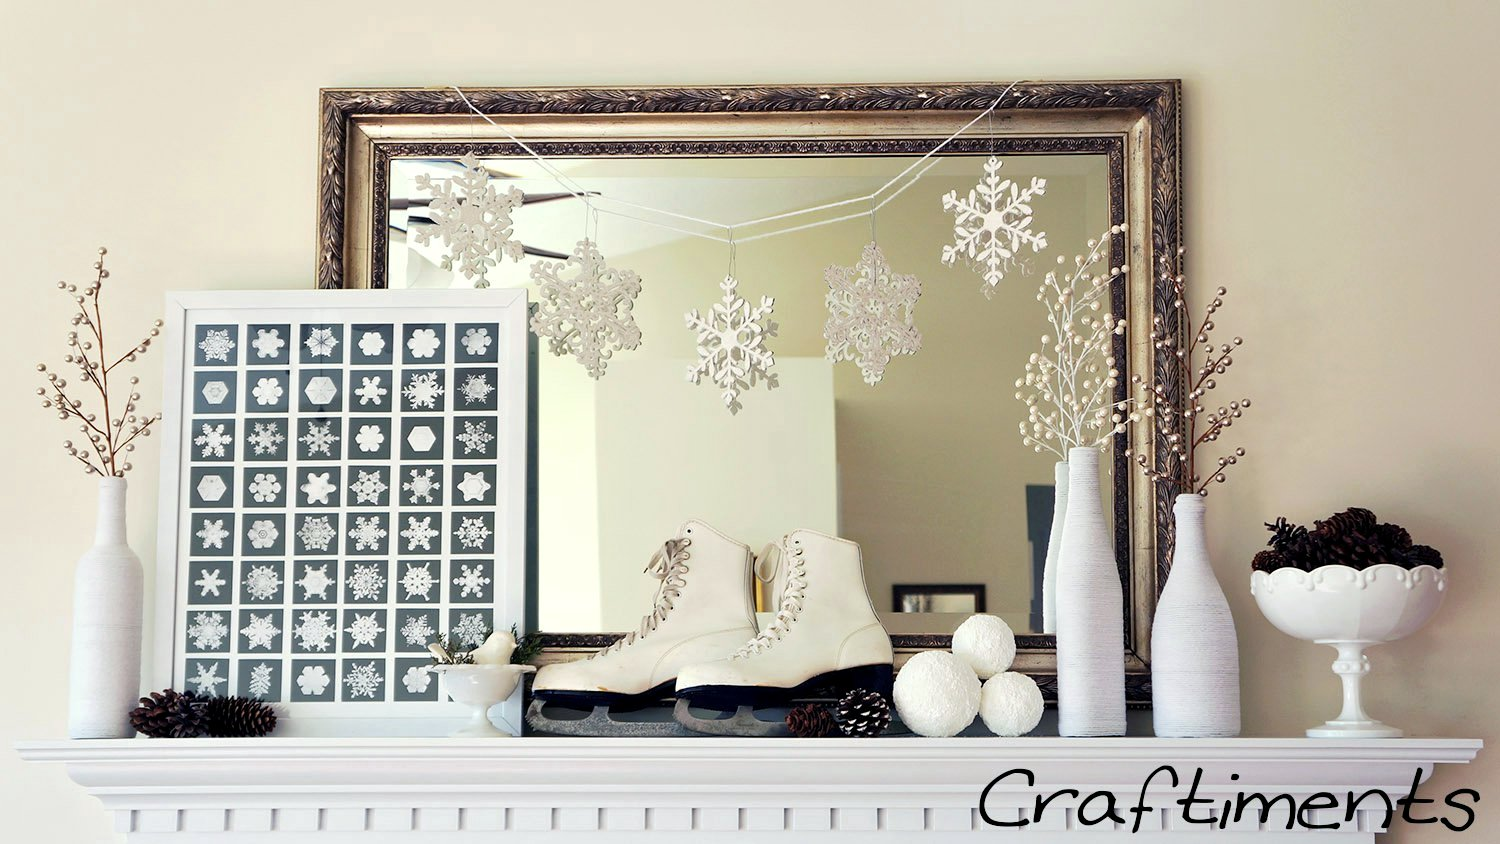 Craftiments:  Snowy White Winter Mantel